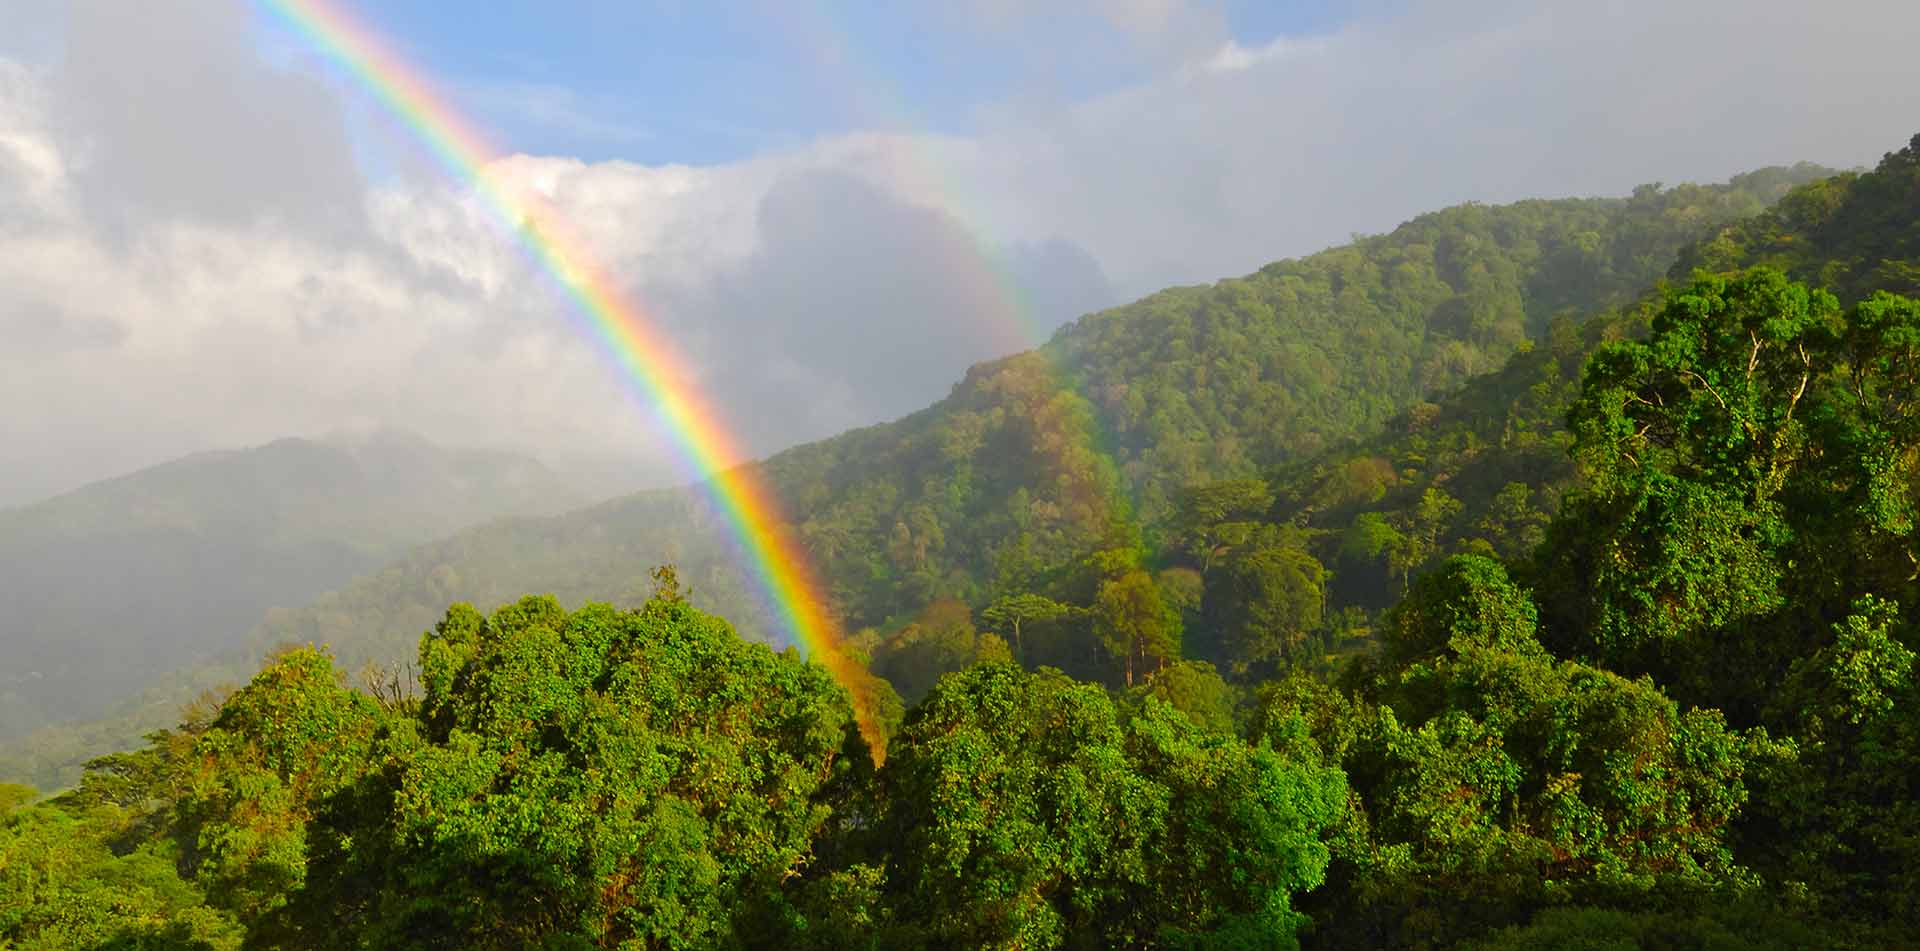 Central America Panama double rainbow over the forest in Boquete - luxury vacation destinations